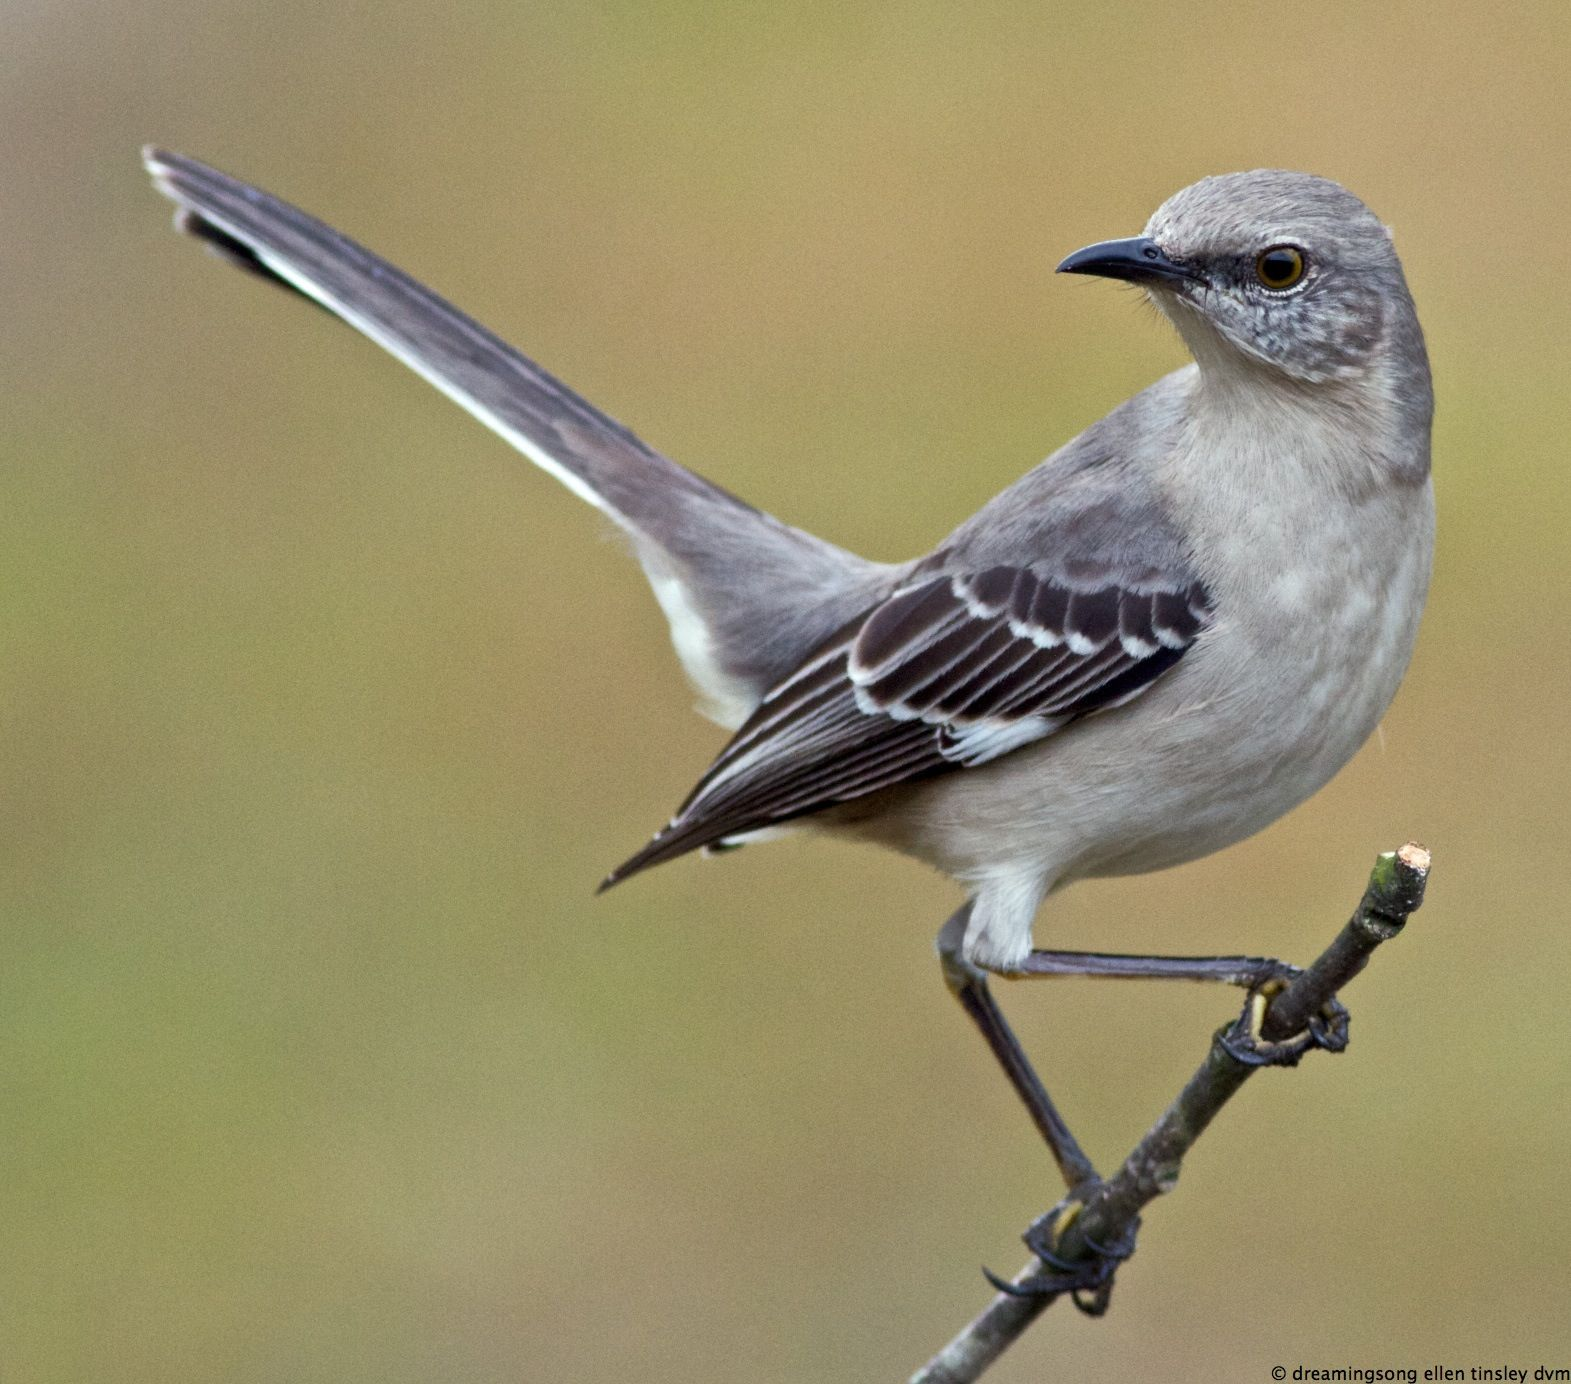 best images about birds northern mockingbird 17 best images about birds northern mockingbird bobs to kill a mockingbird and birds